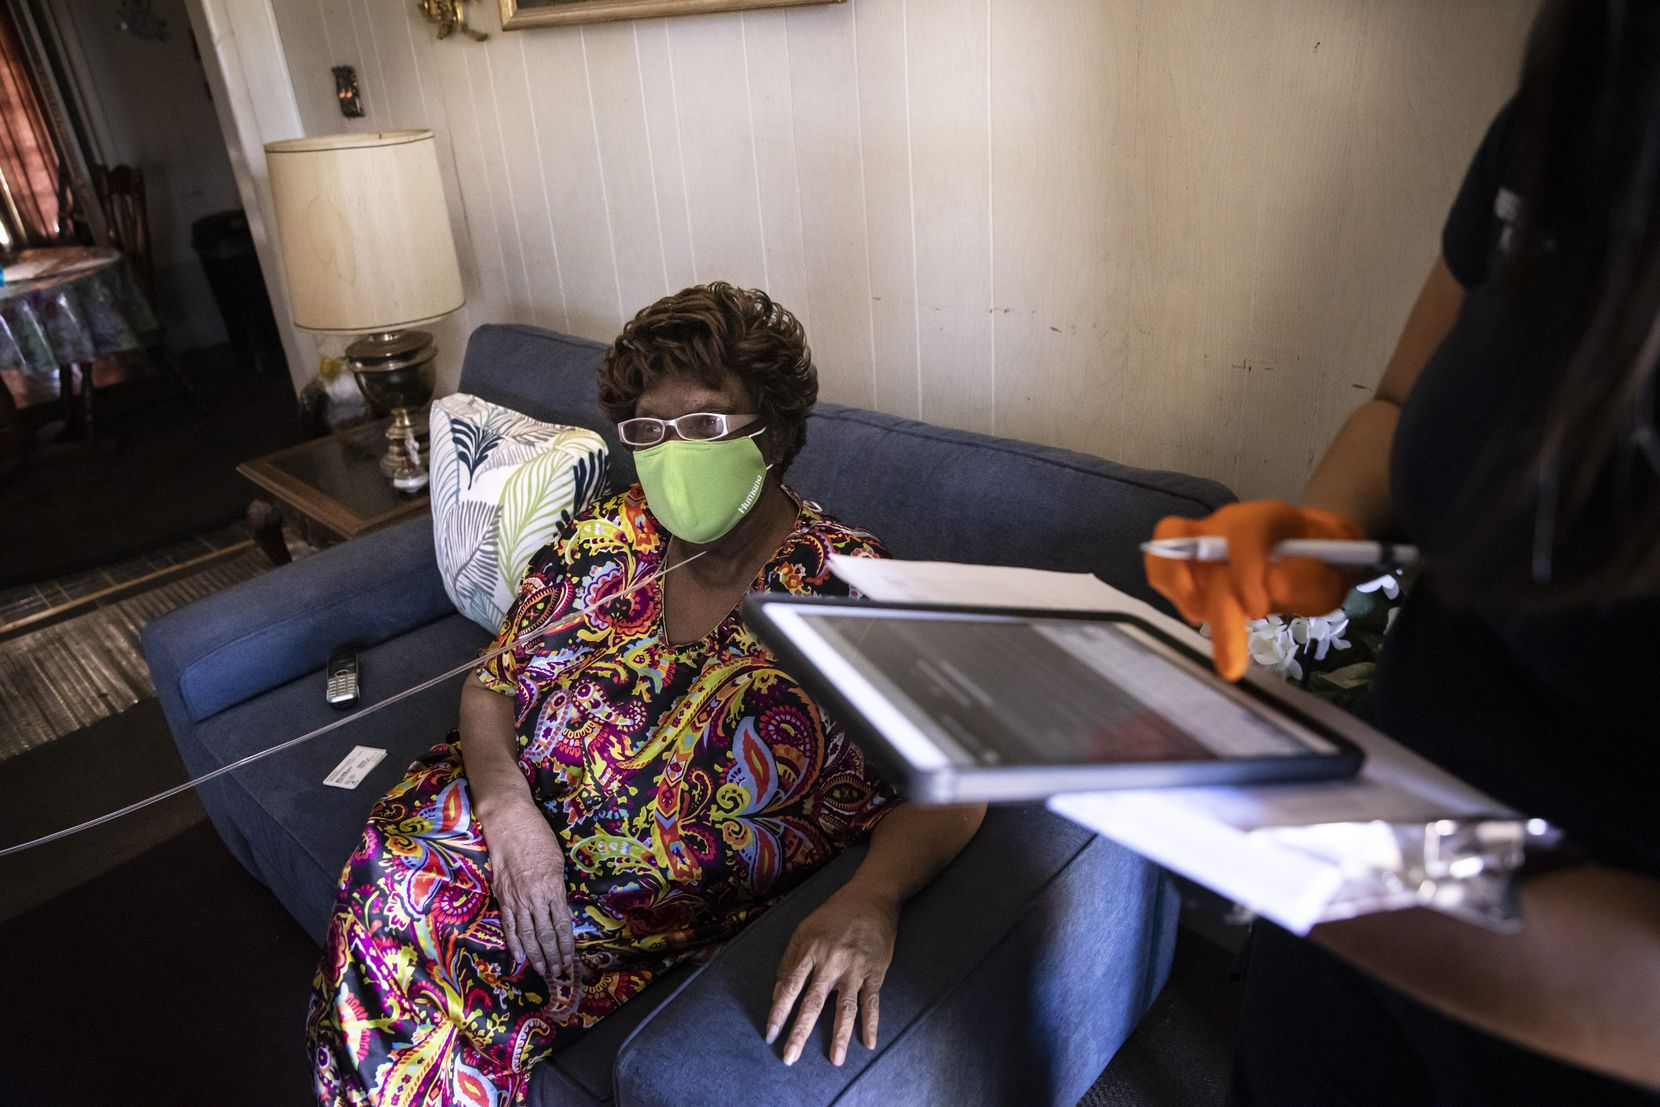 Firefighter/paramedic Kassandra Goce surveyed and monitored Erma Adams, 80, after Adams received her first dose of the Moderna COVID-19 vaccine Monday at her home in Corpus Christi.